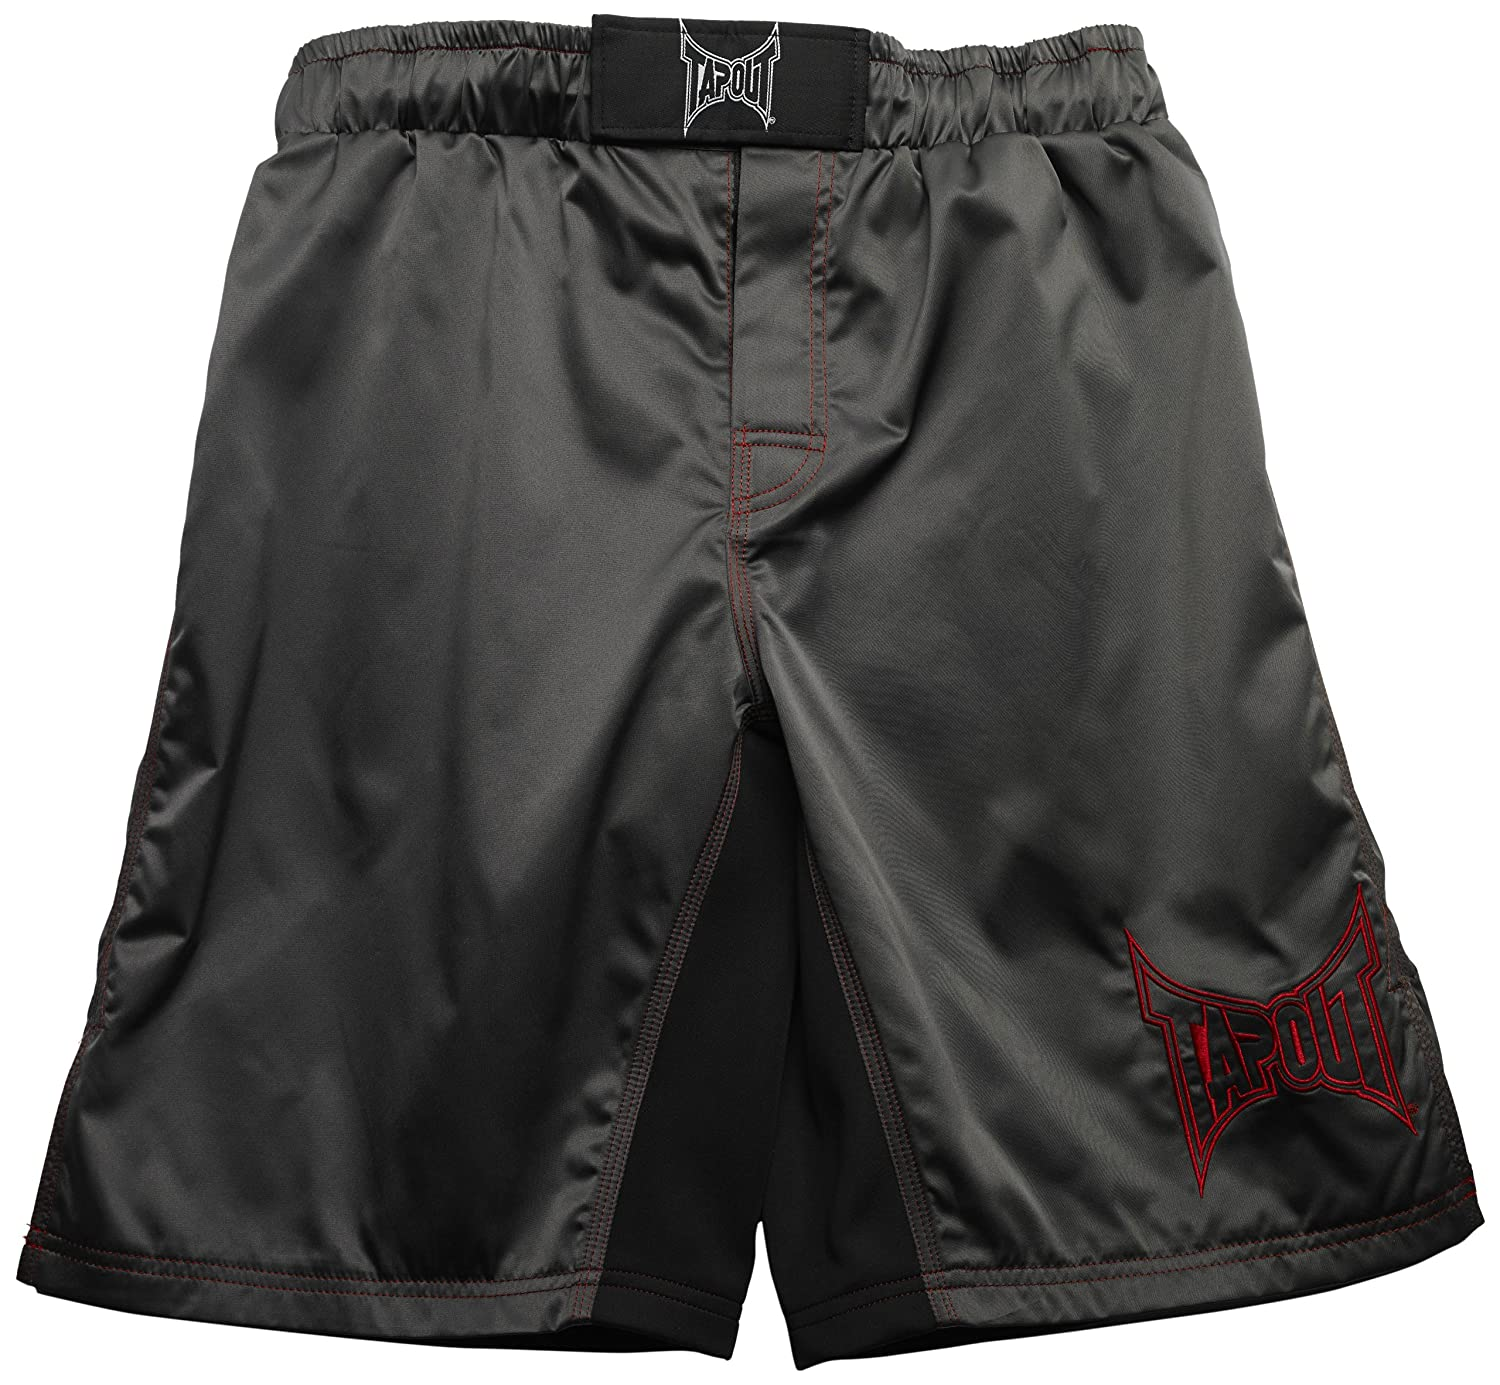 36-Inch Gray TapouT Fight Shorts